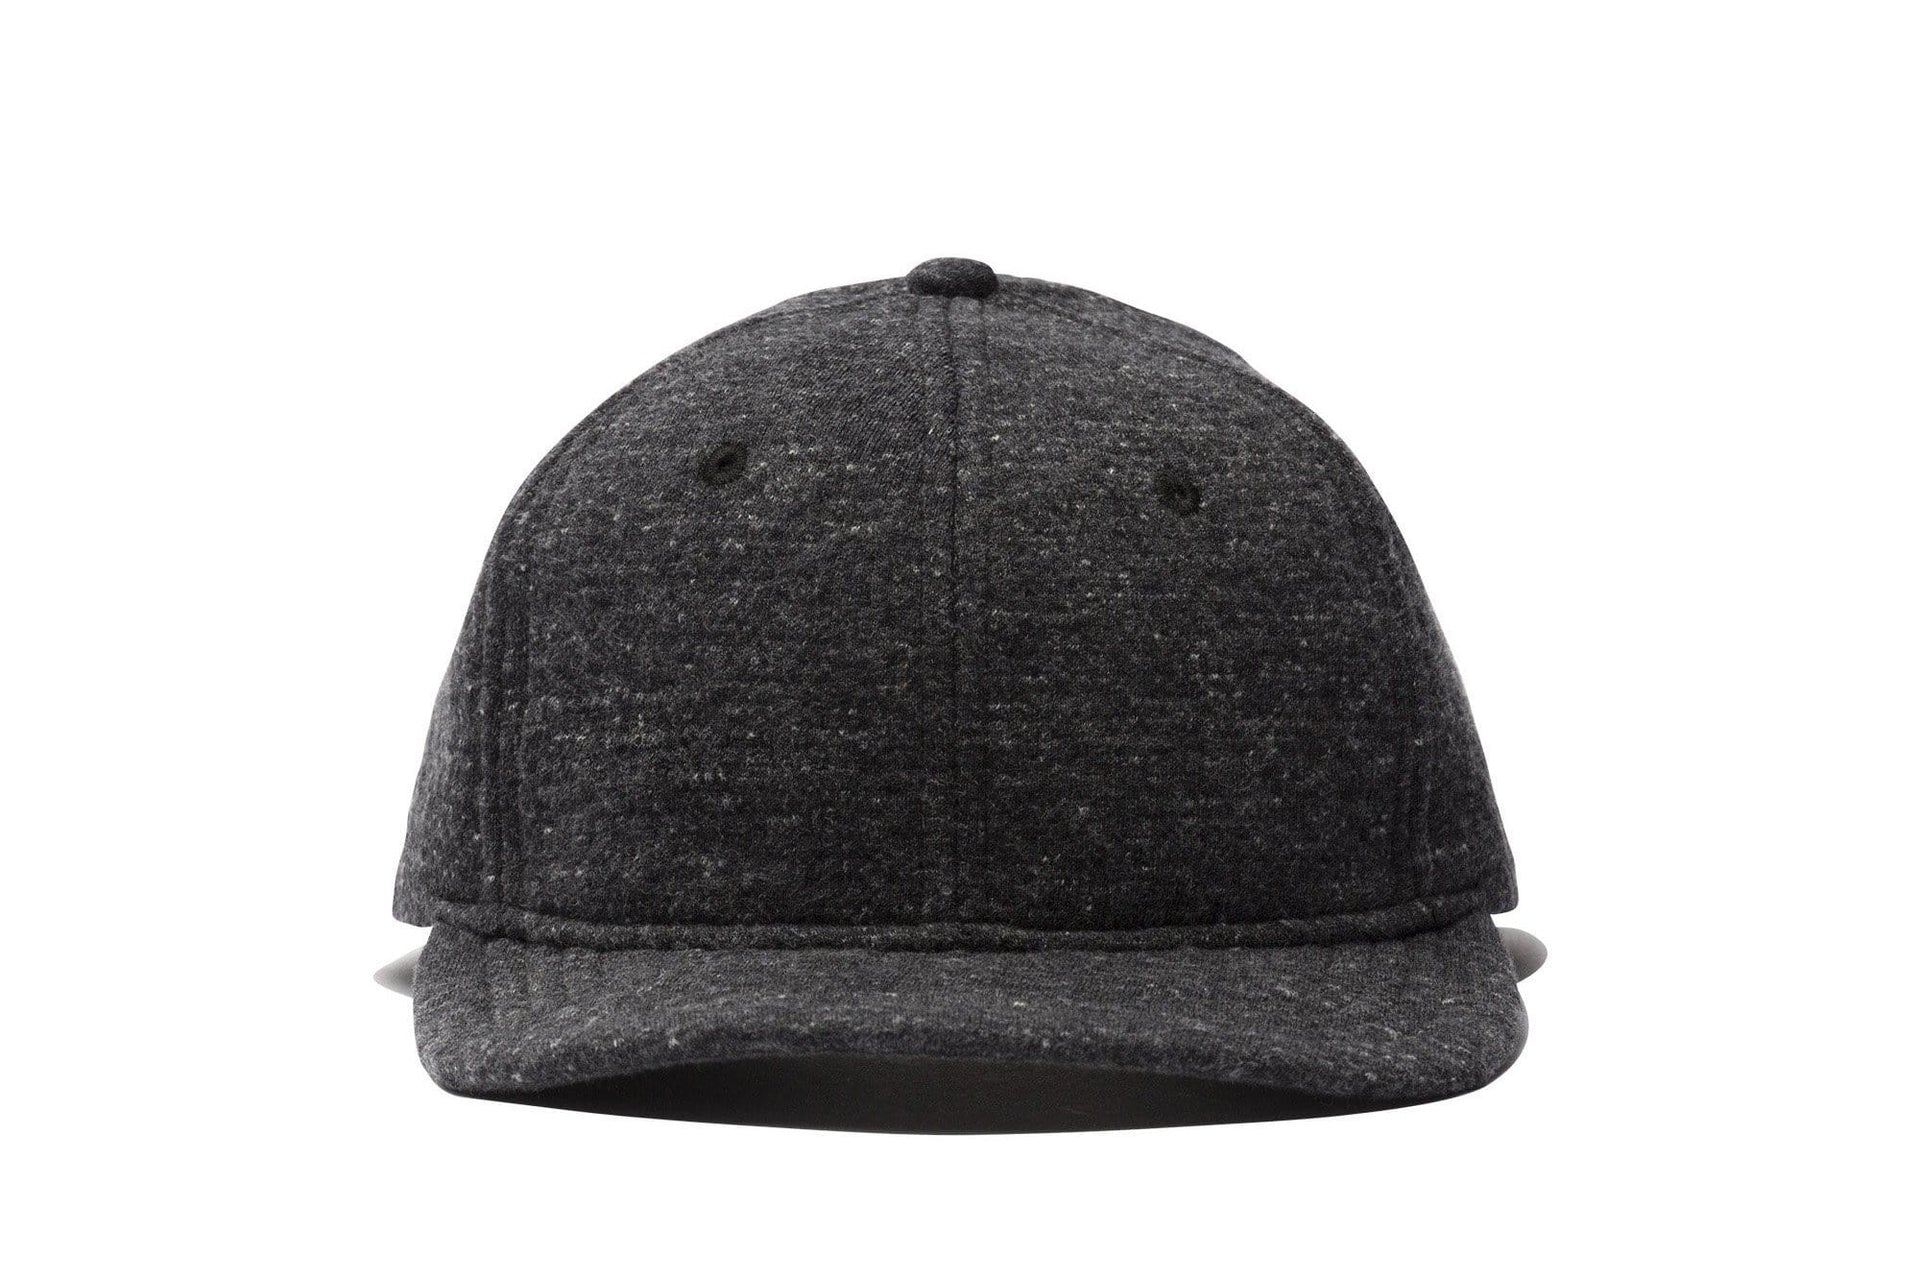 KNIT CABIN FLEECE 6-PANEL HAT HATS WINGS+HORNS CHARCOAL ONE SIZE